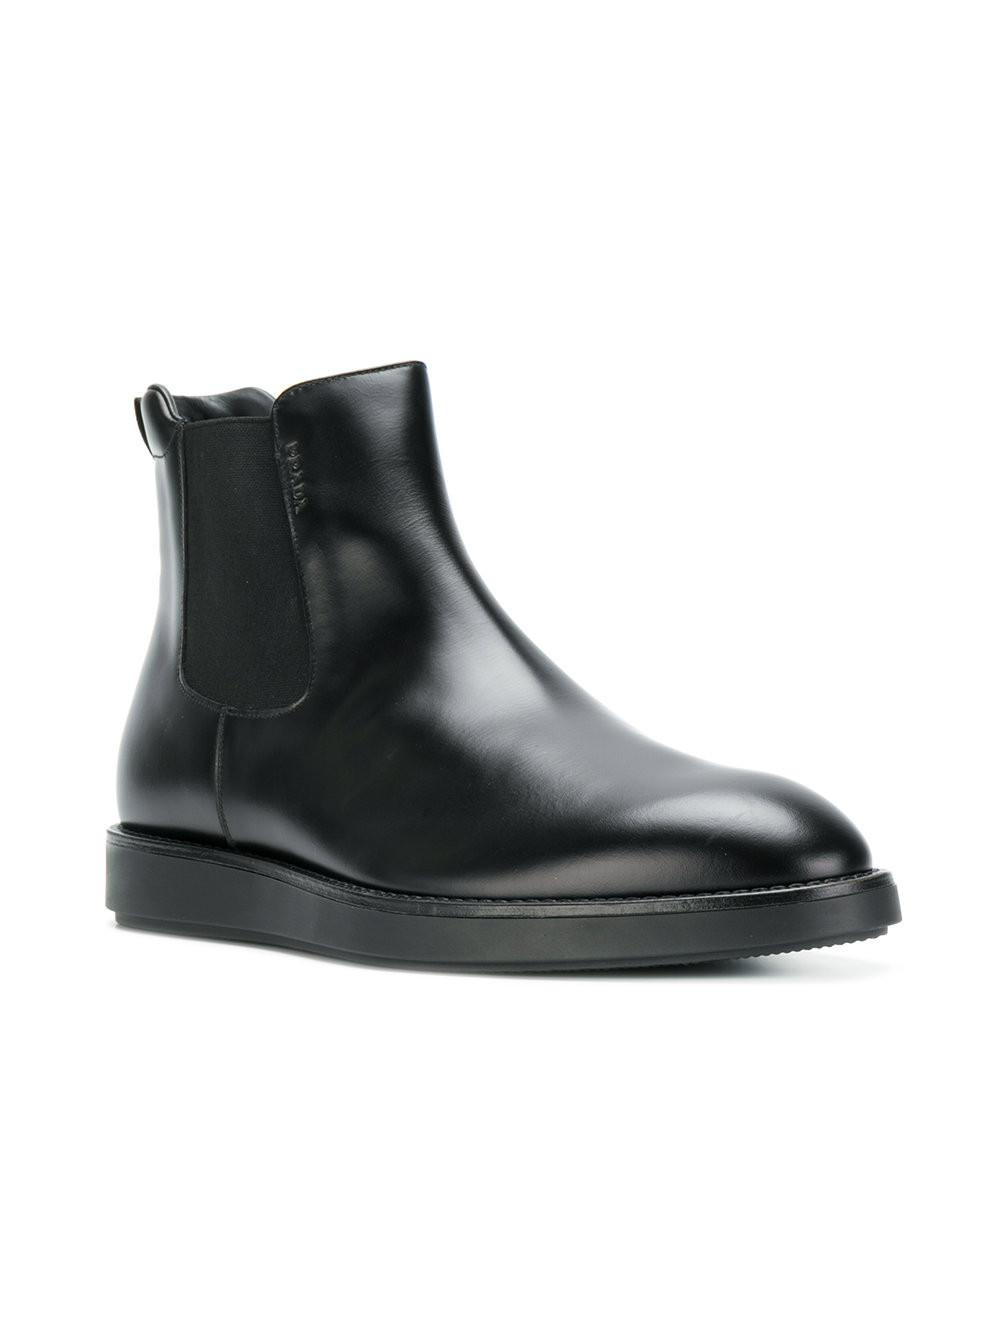 f5f6ab49f5c Prada Welted Chelsea Boots in Black for Men - Lyst